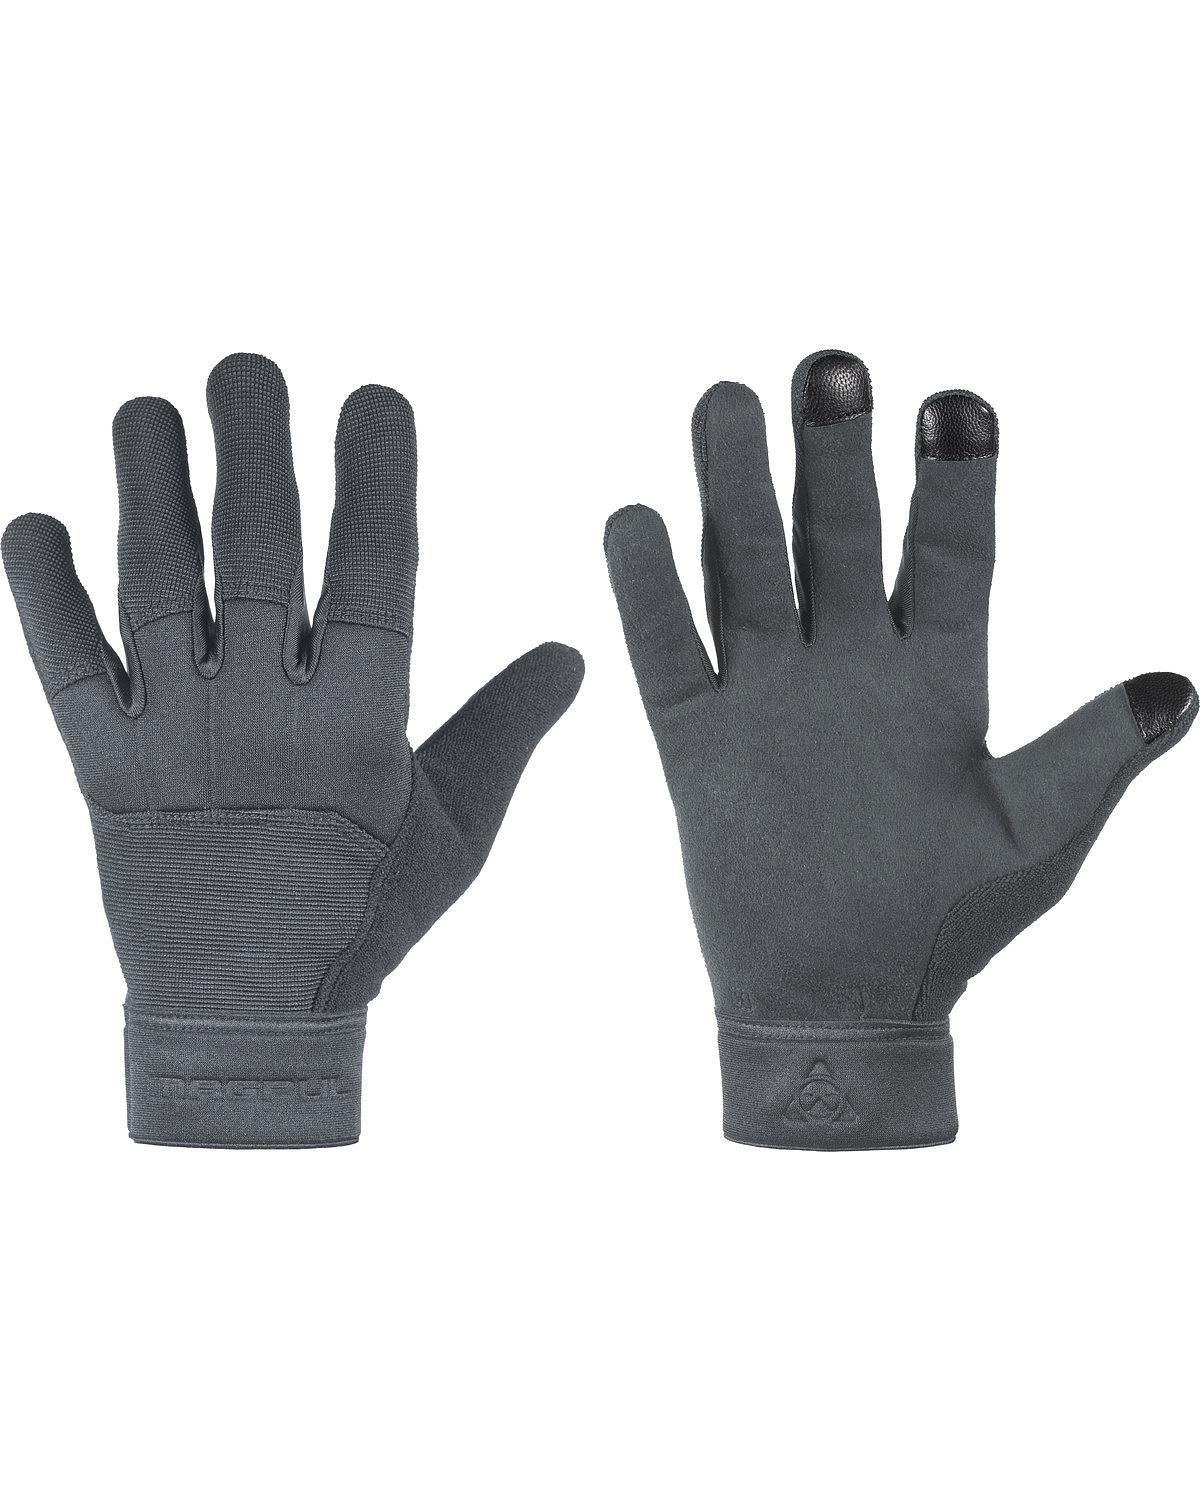 Buy leather hand gloves online india - Magpul Industries Technical Gloves